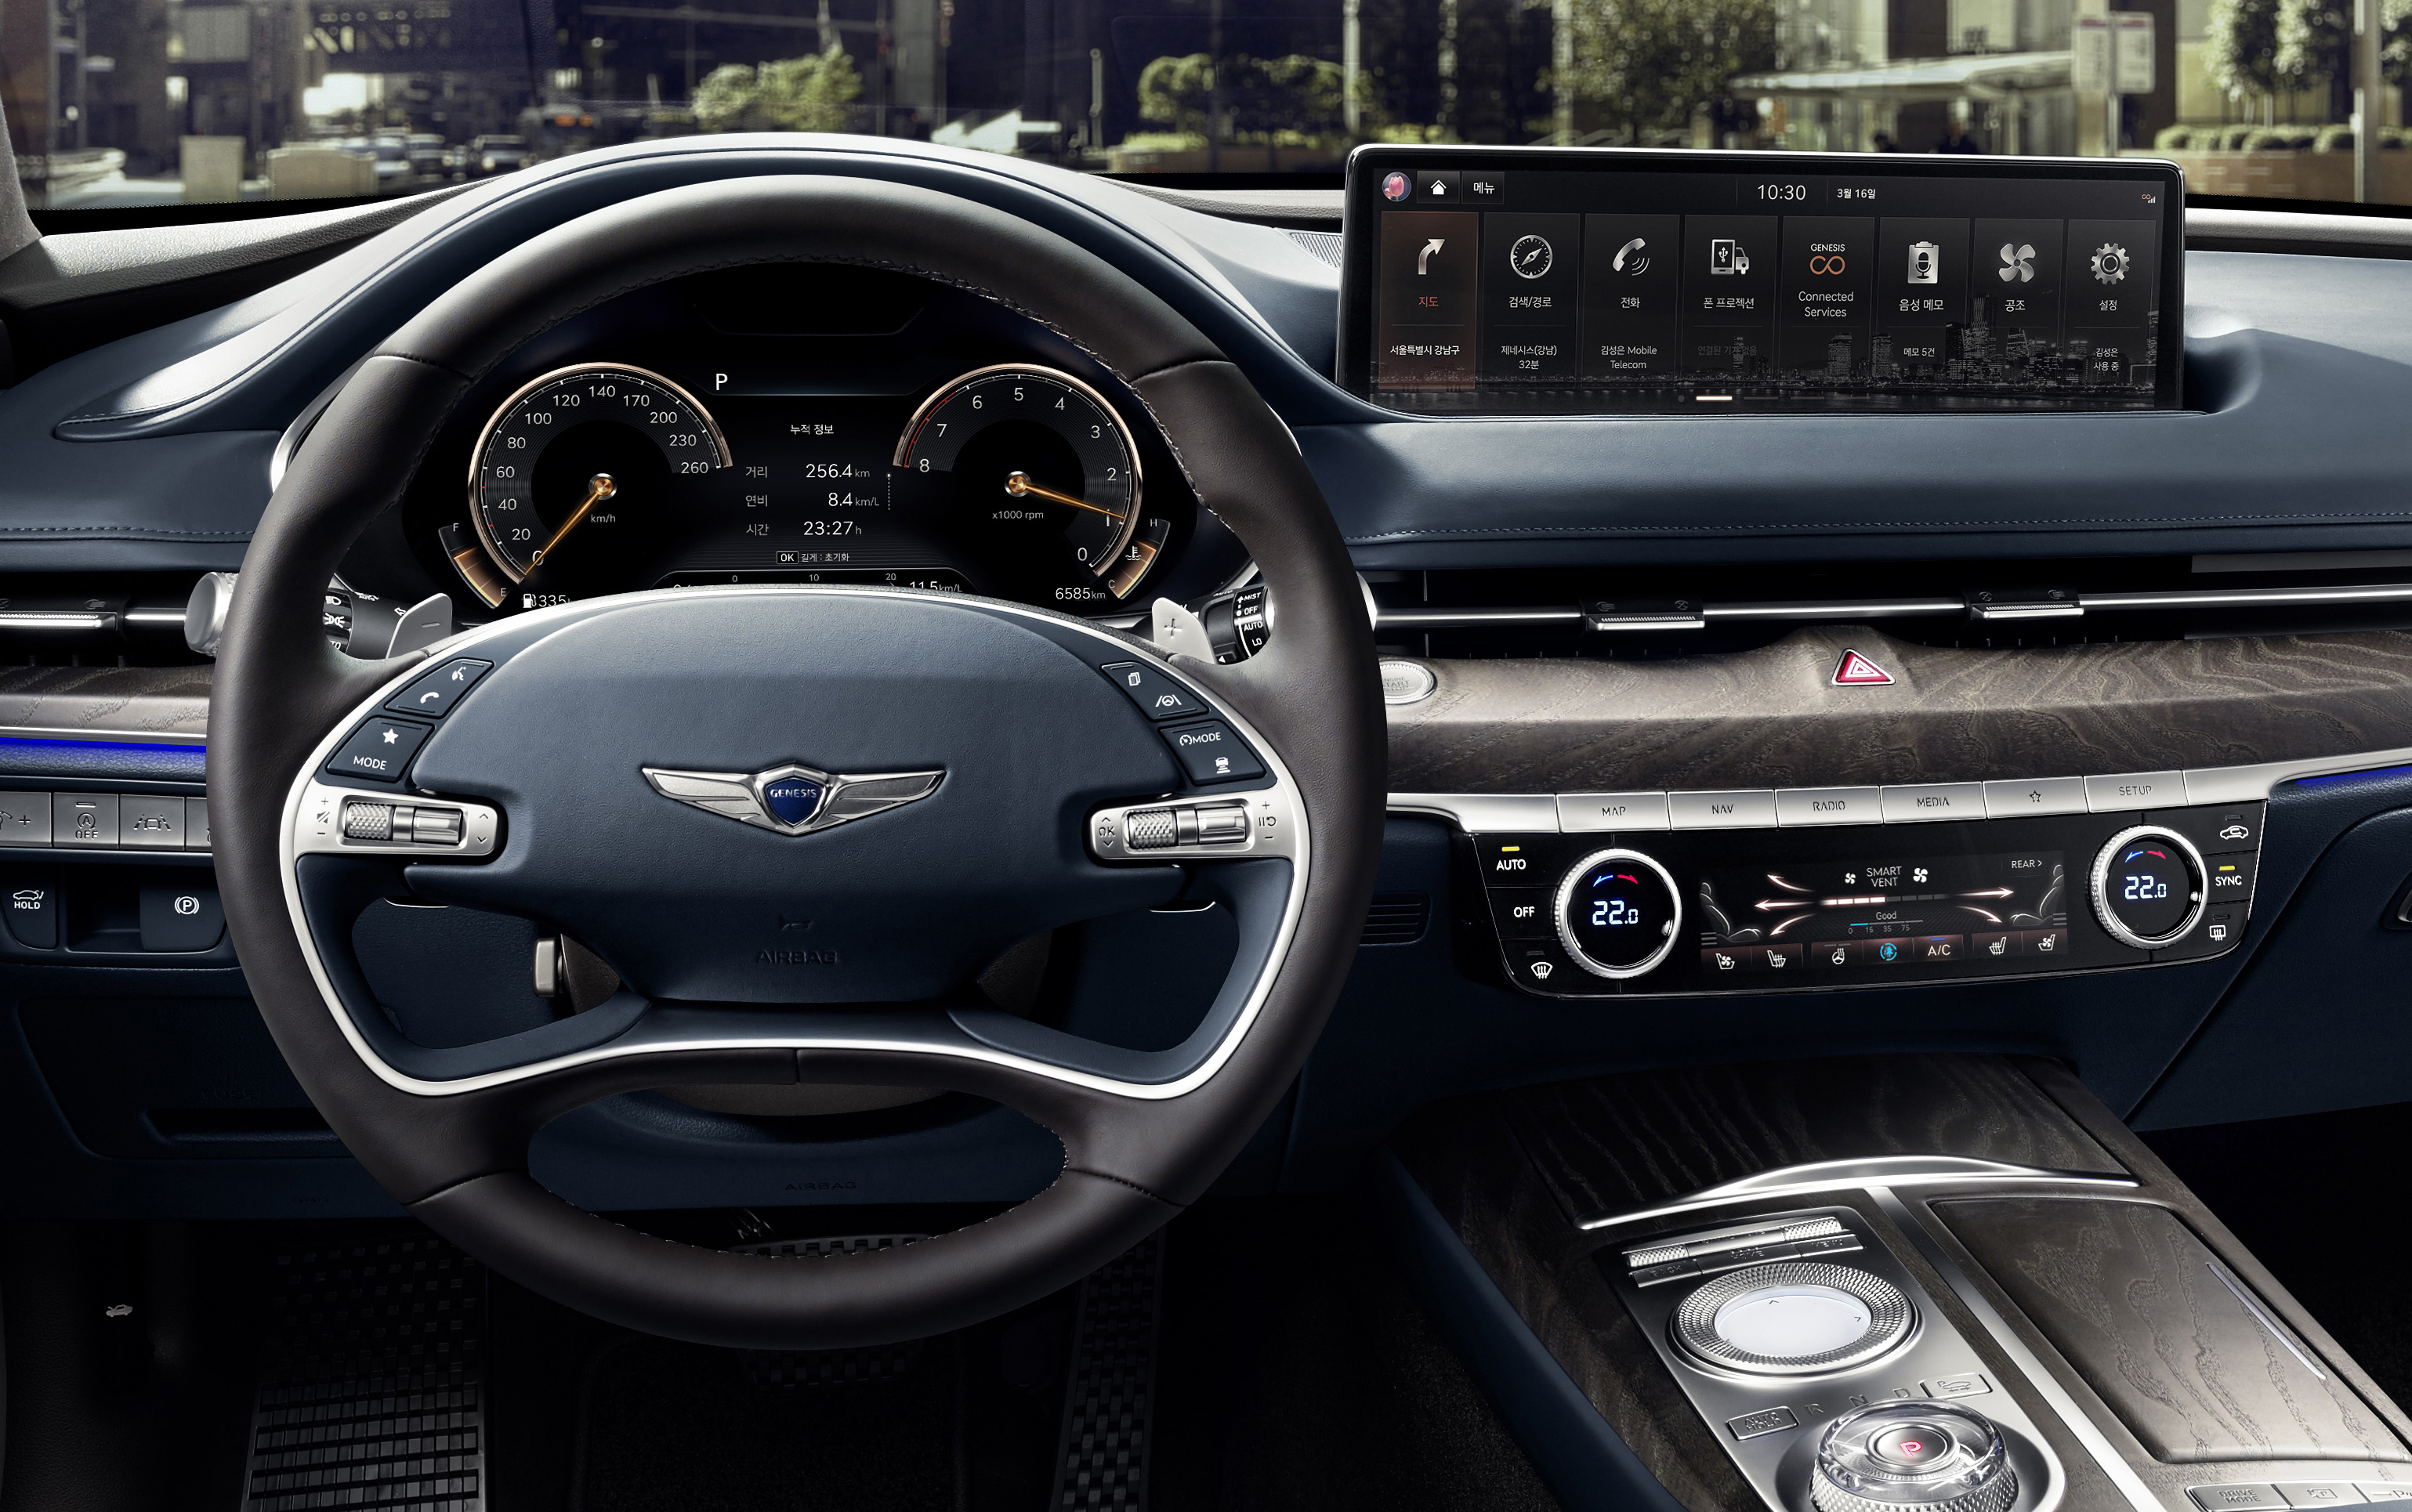 all-new-2021-genesis-g80-interior-11erer.jpg